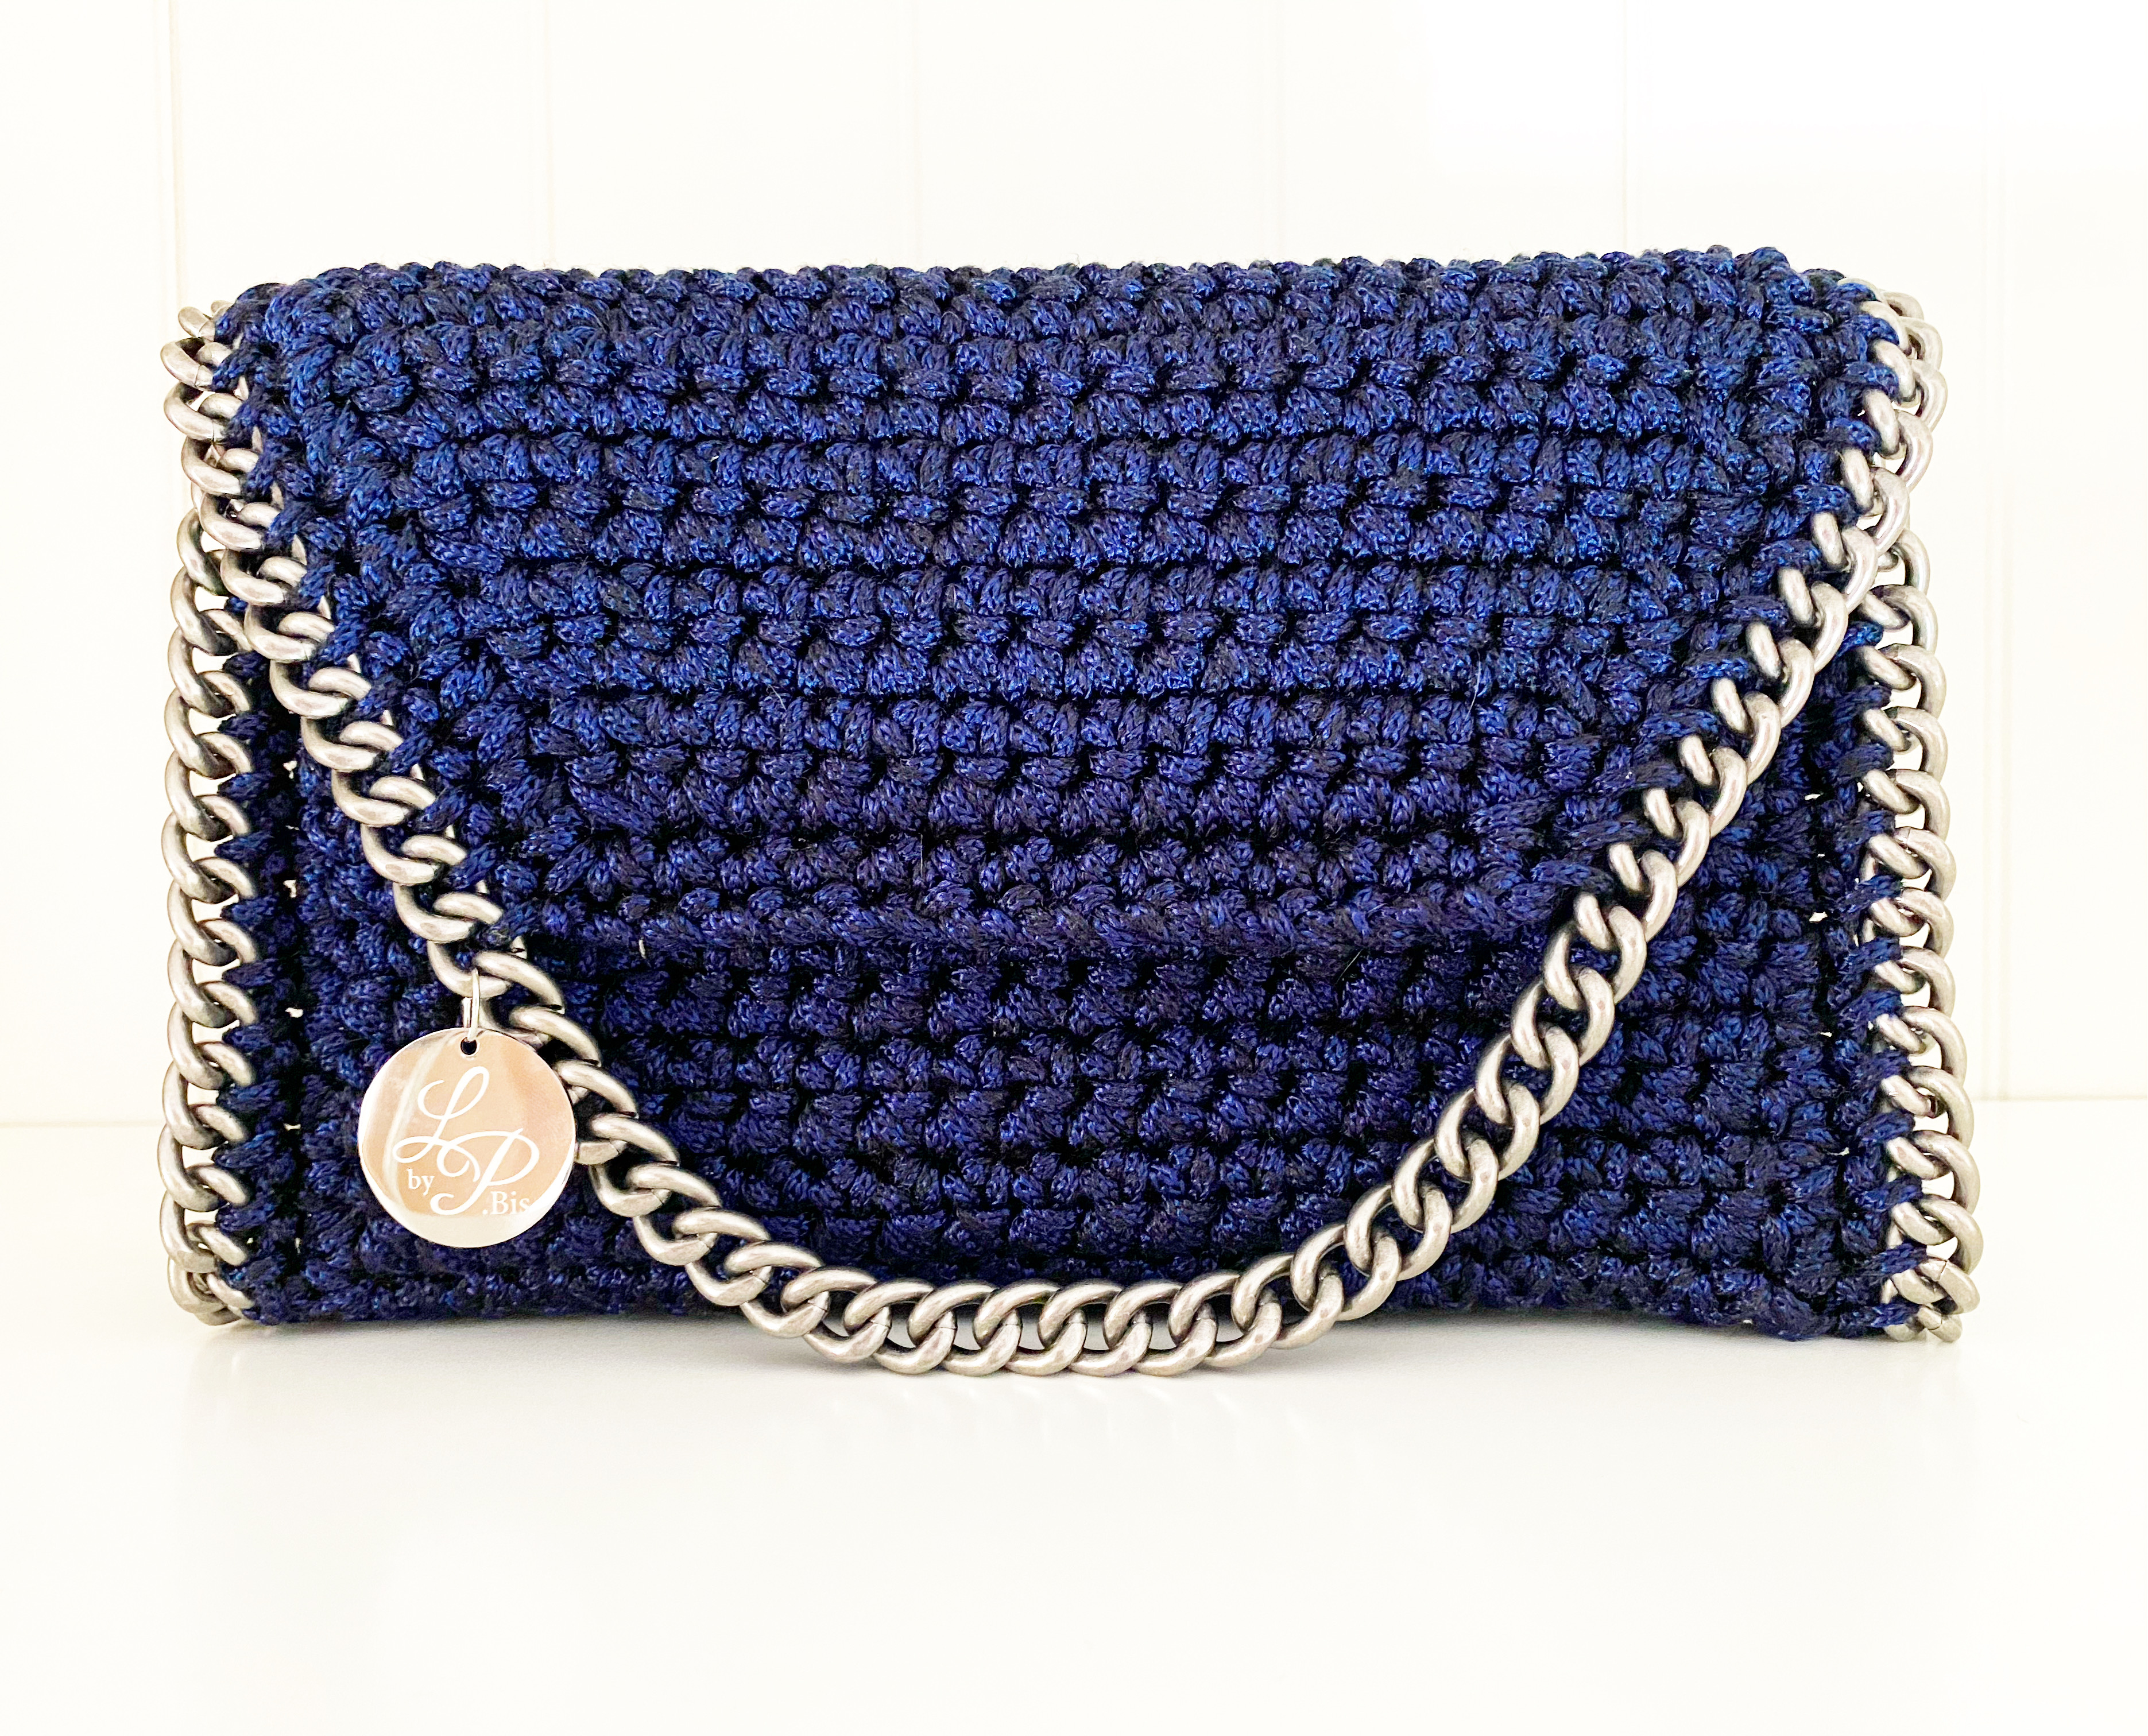 Manhattan Bag - blue